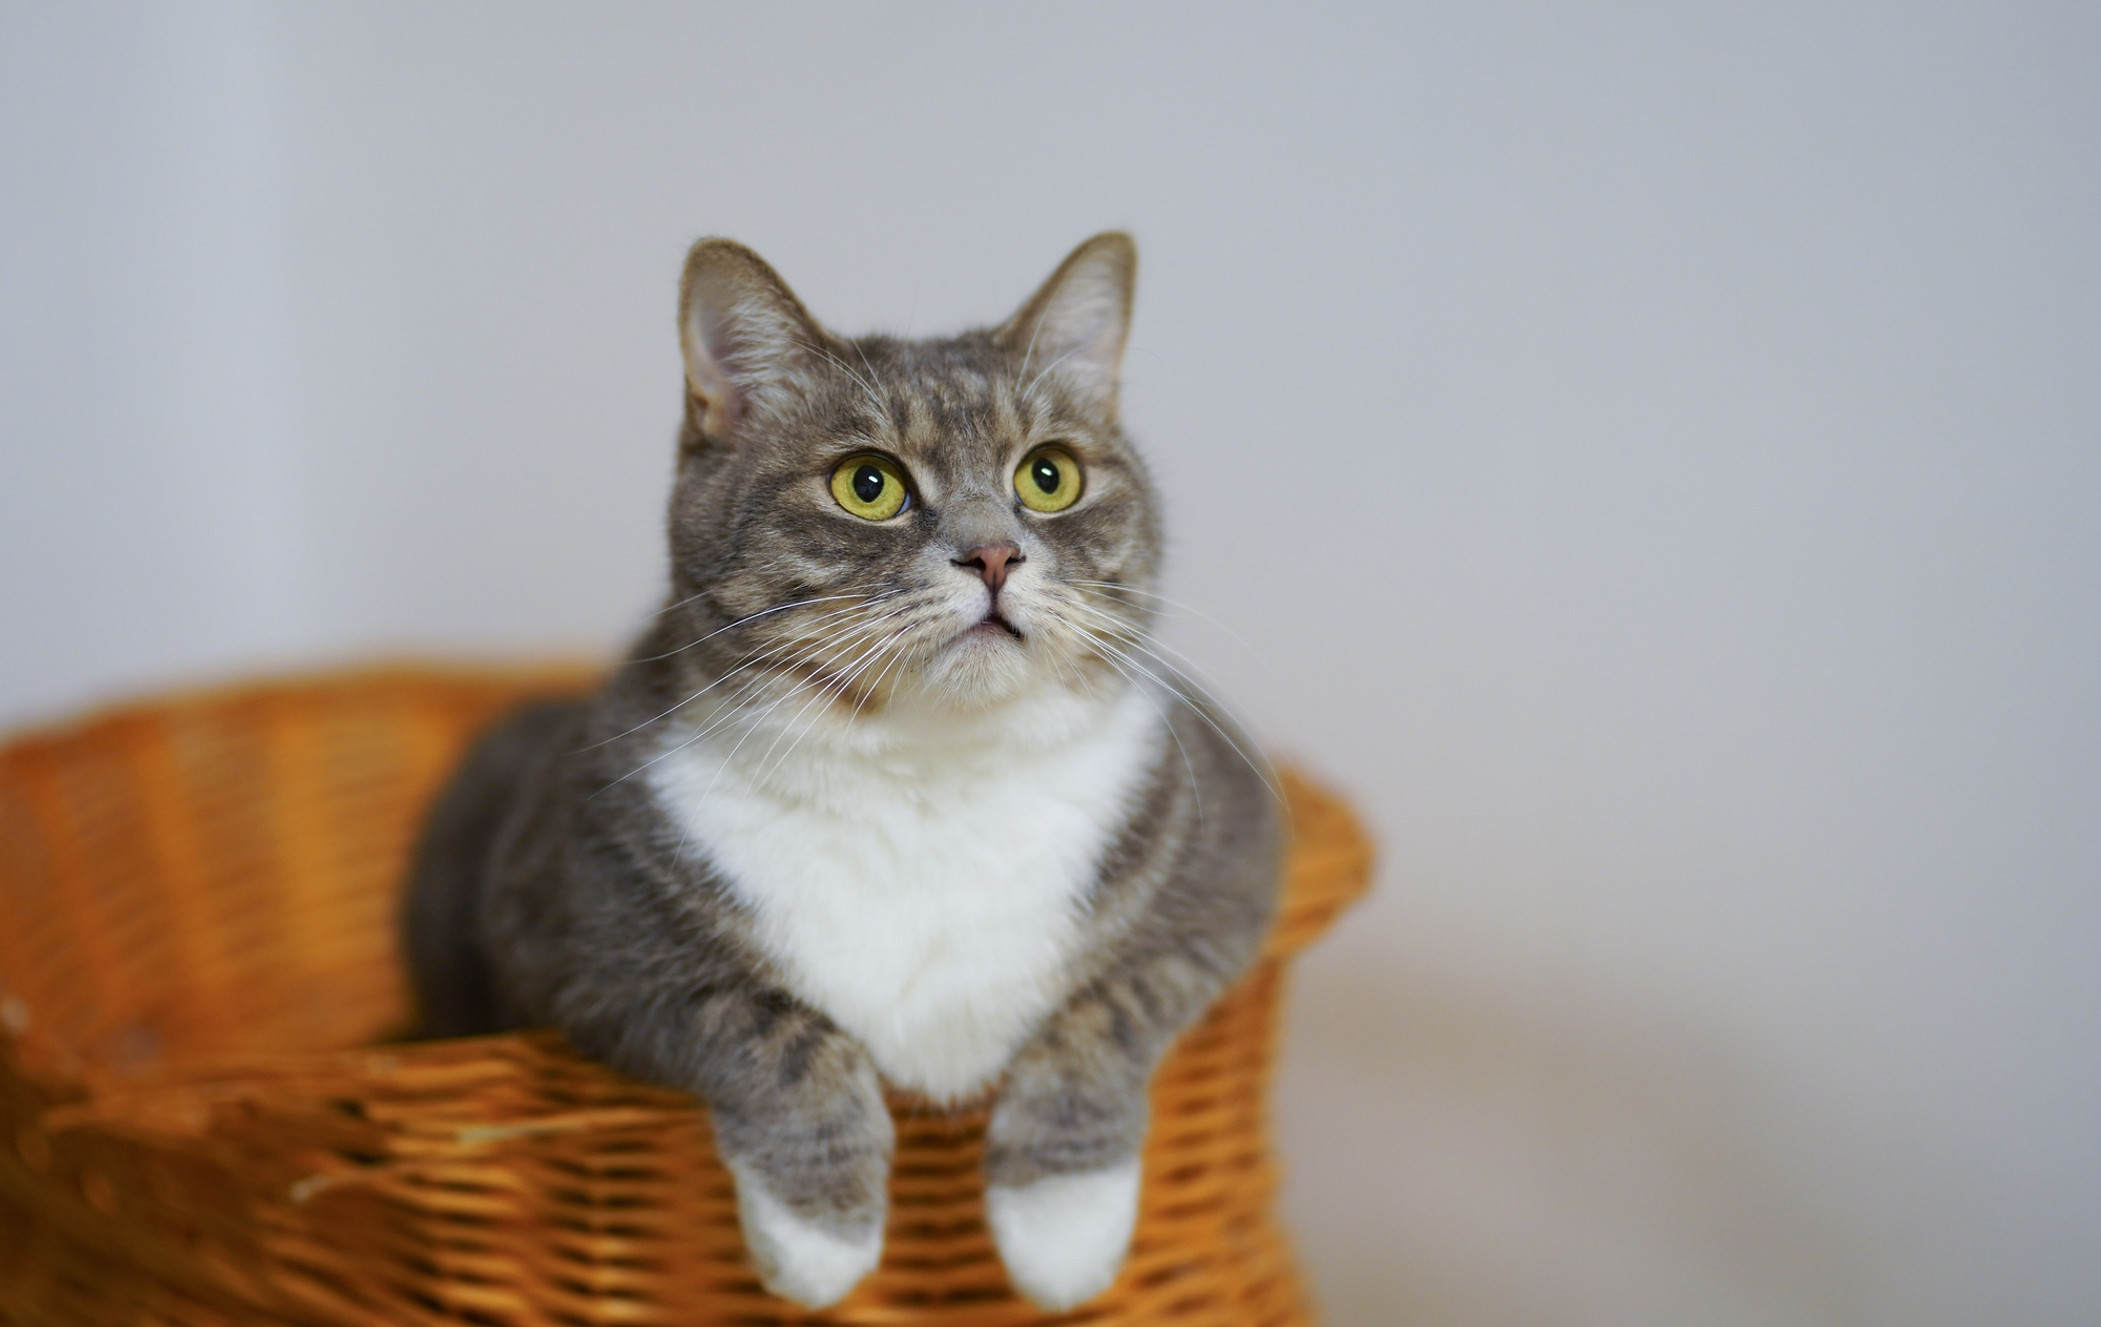 white-and-gray-cat-in-brown-woven-basket